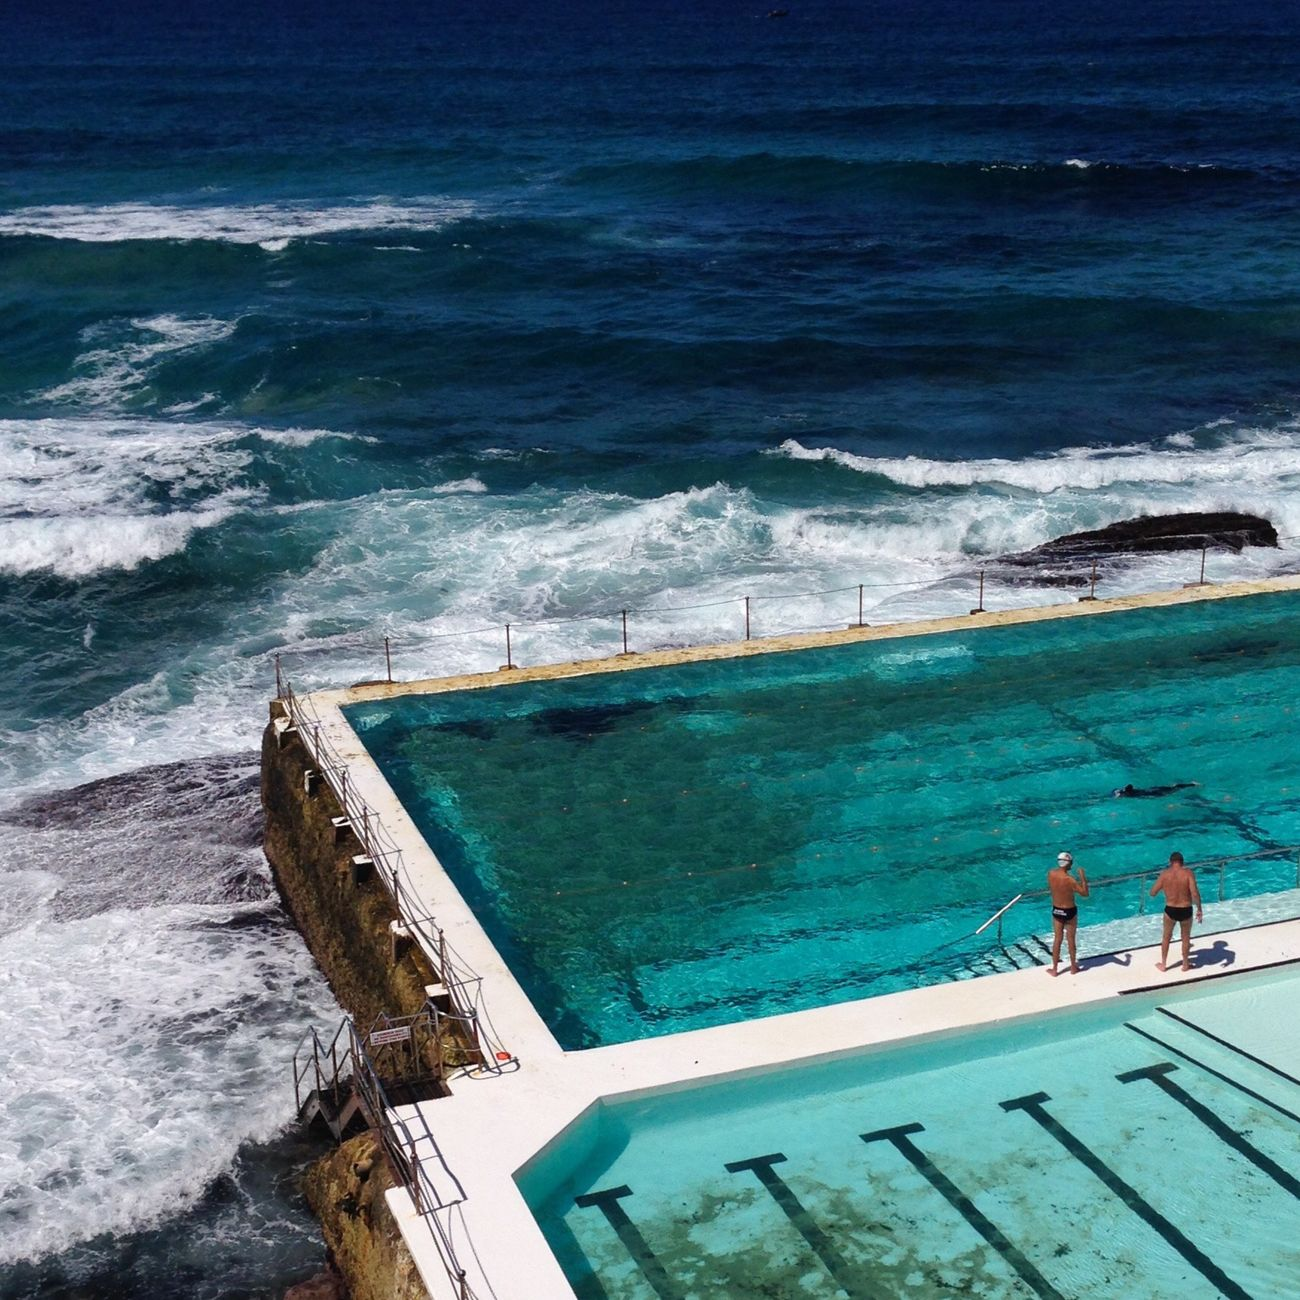 Bondi Beach Icebergs Sydney Pool Ocean Pool People Of The Oceans